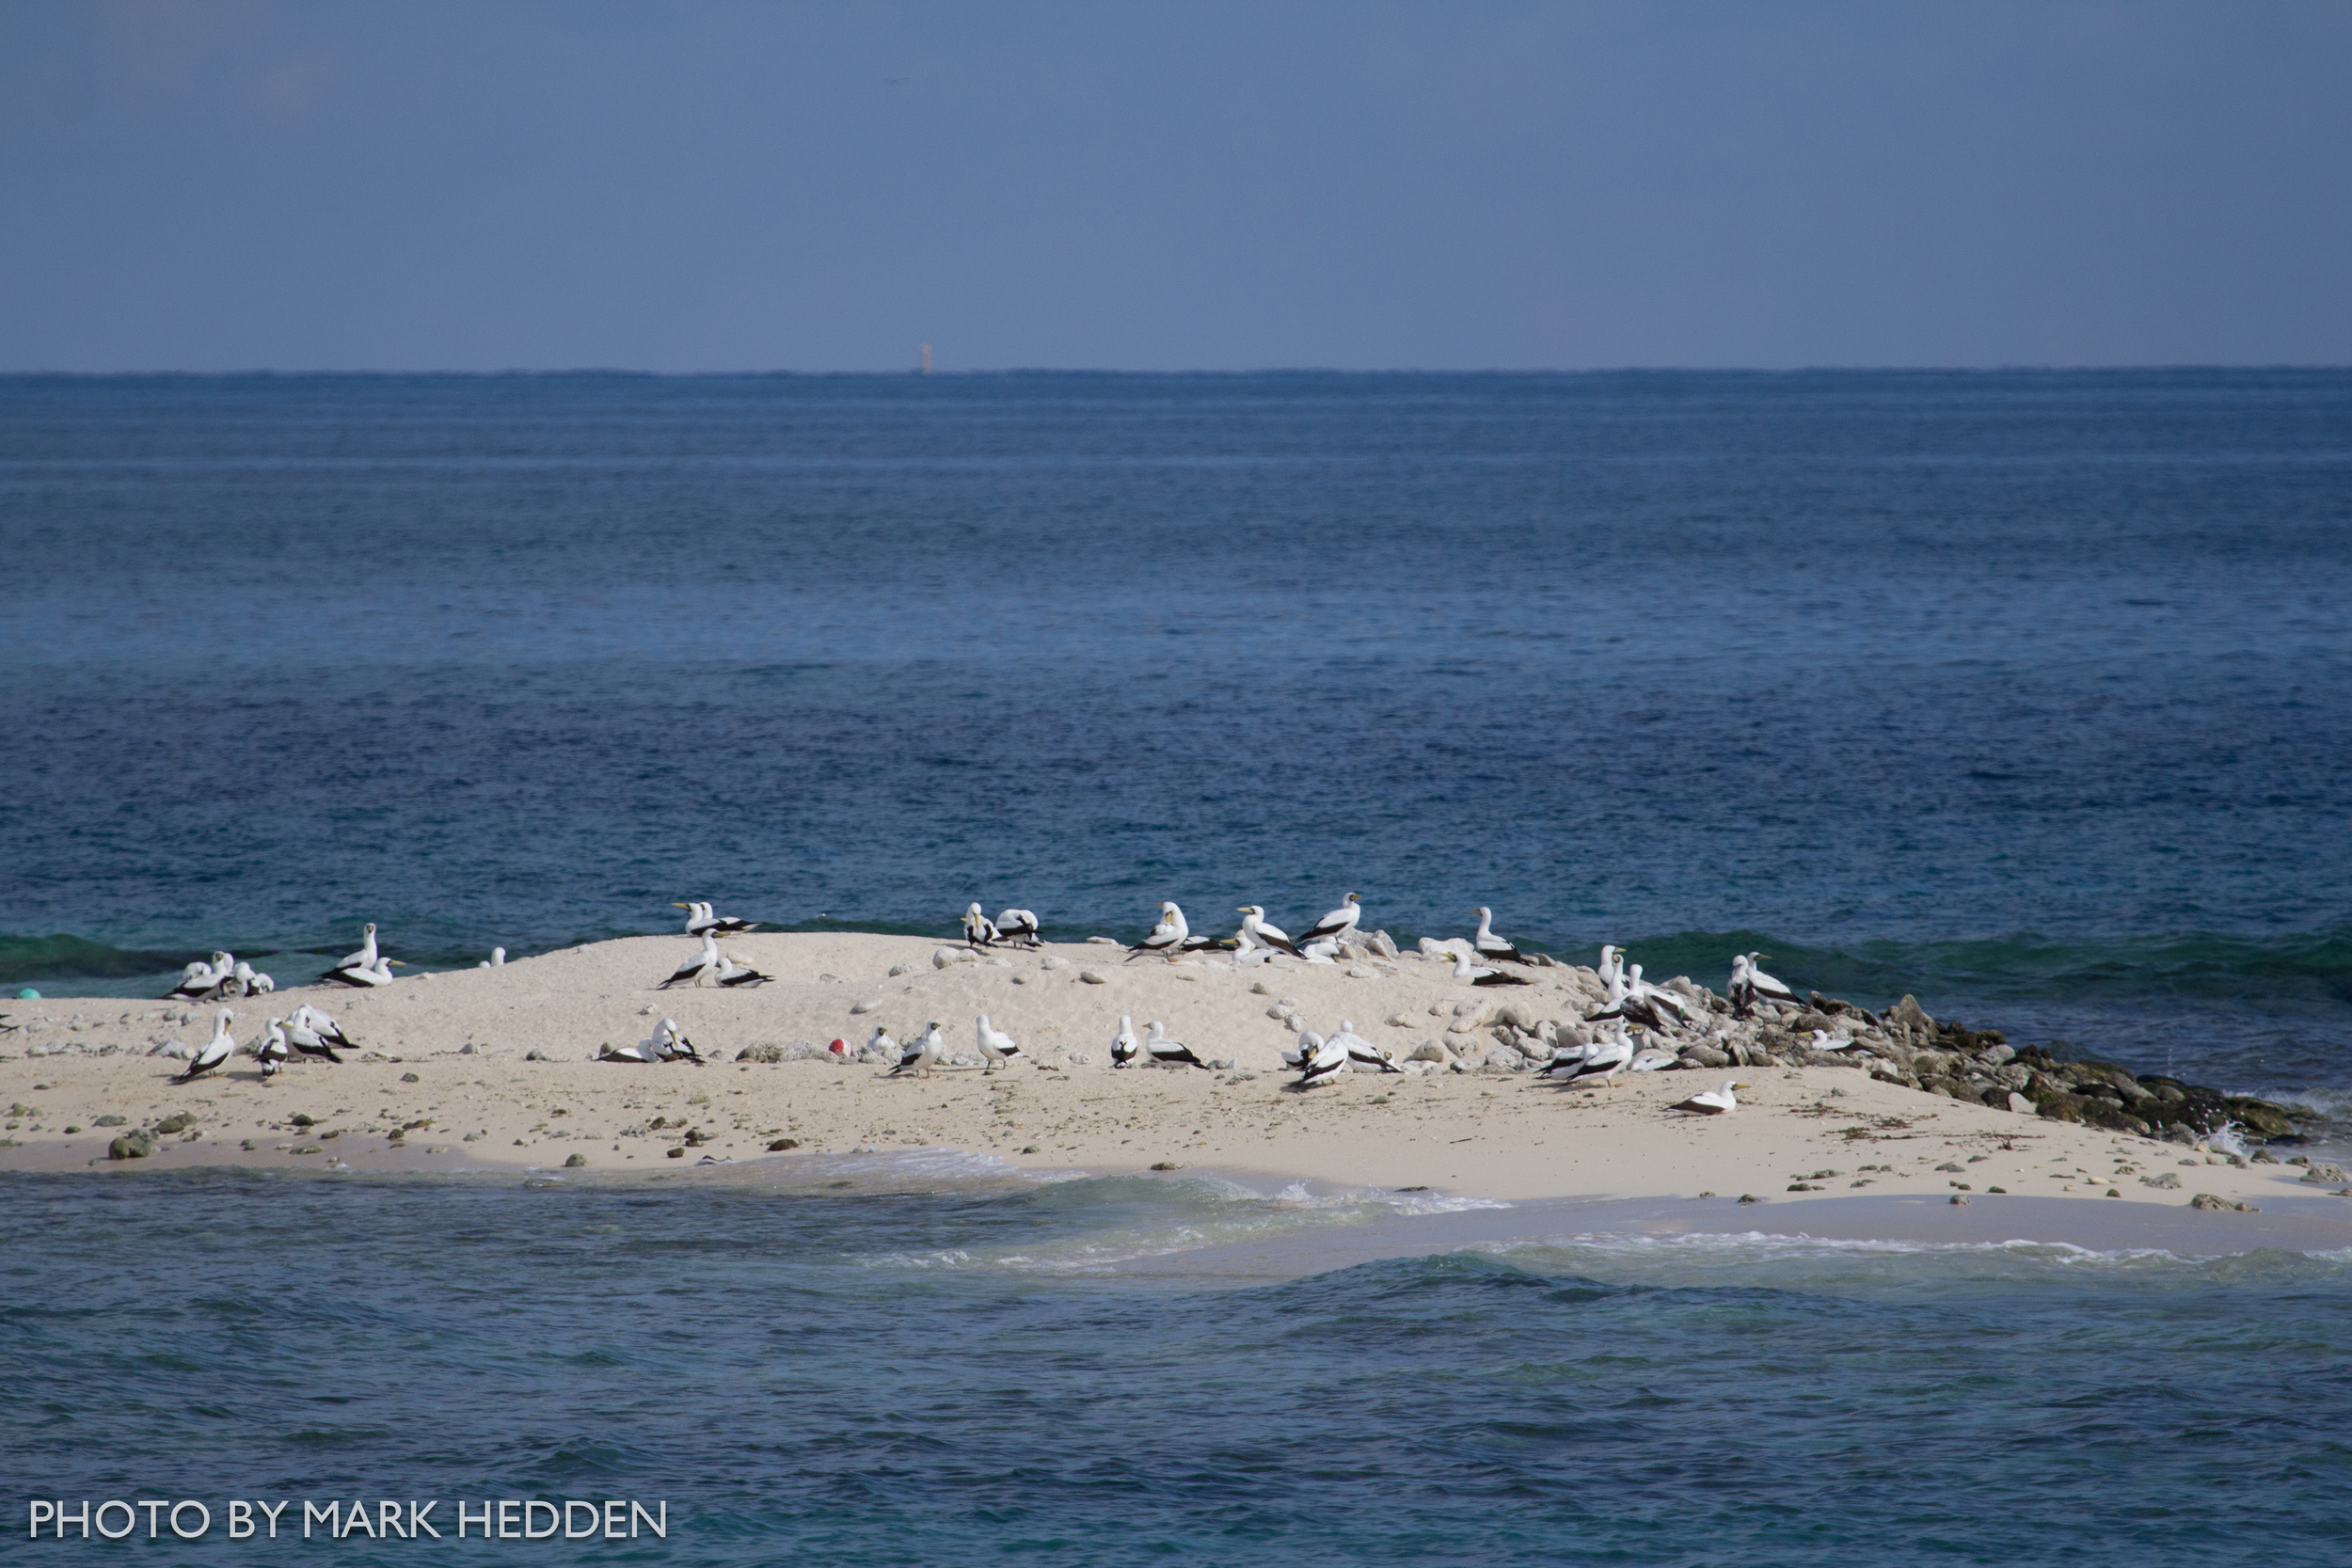 The Masked Booby colony on Hospital Key.